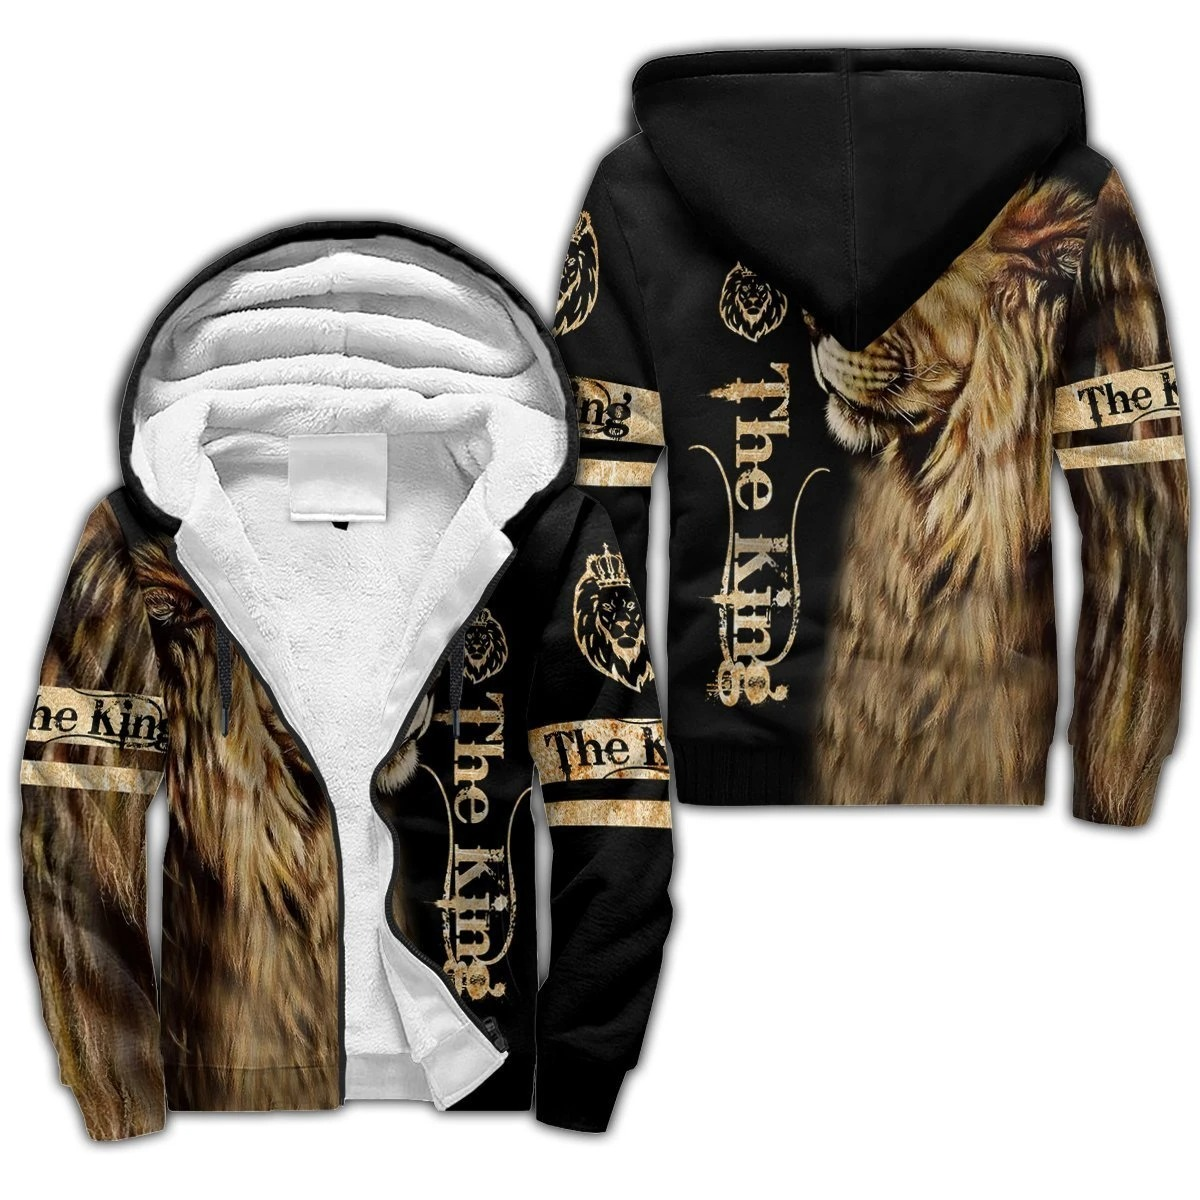 King lion 3d all over printed unisex hoodie and shirt 4